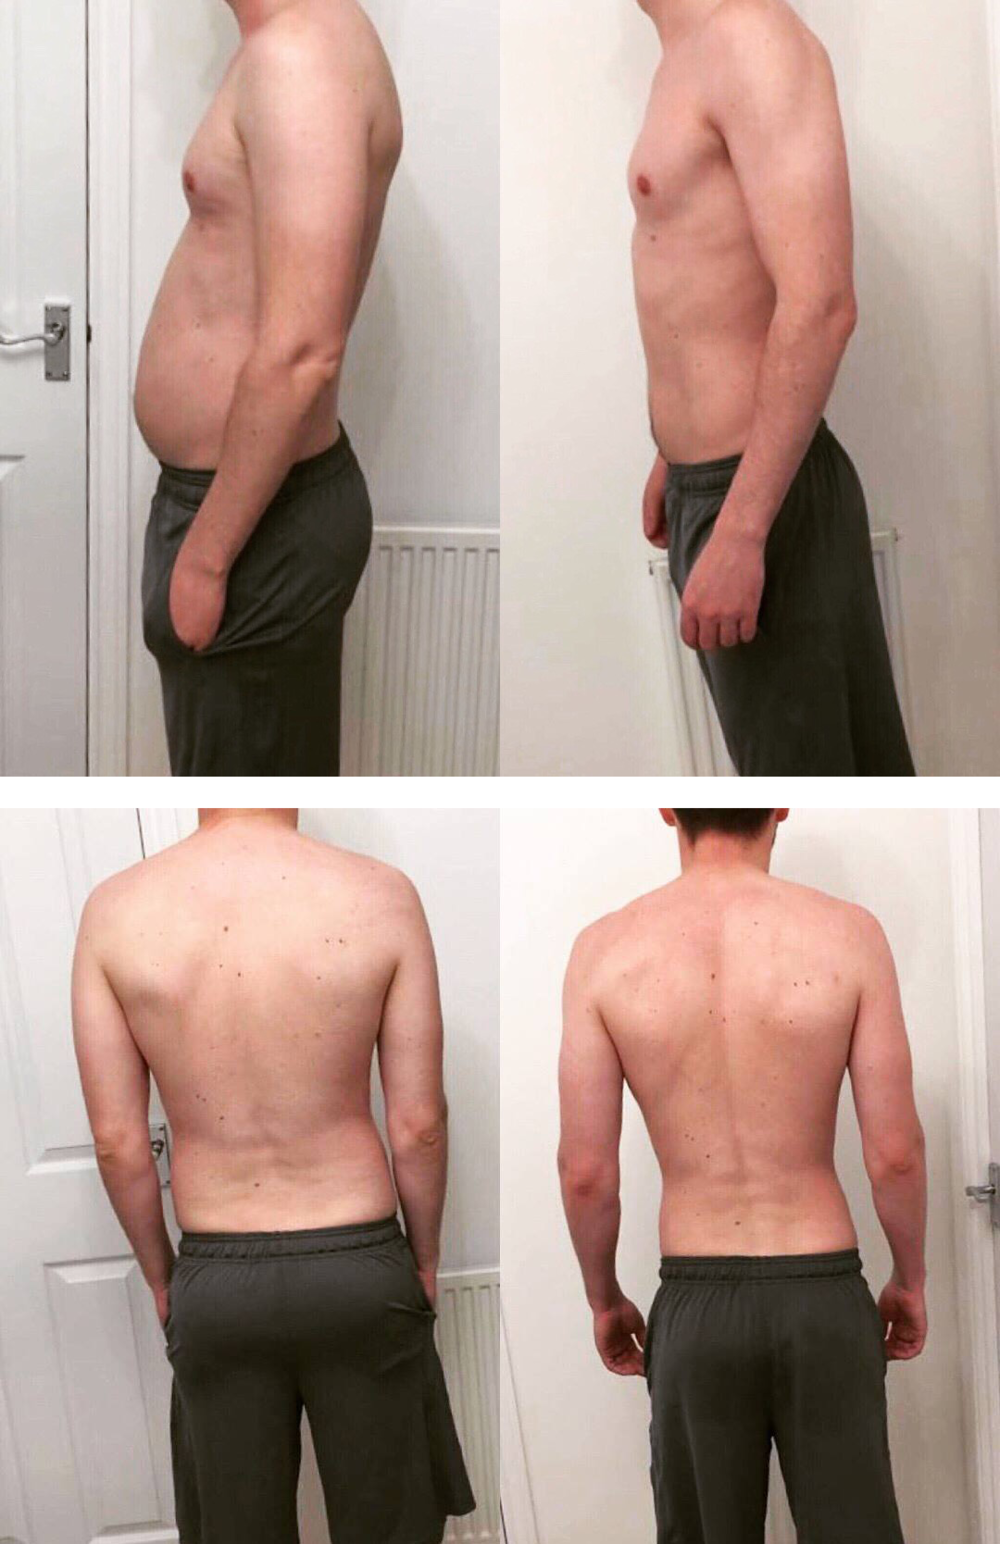 CFS Nutrition Client - I started CrossFit in February 2018 after coming back from holiday and realising how drastically out of shape I was.After starting CrossFit I realised I had no idea on the right foods to eat to help fuel my body and allow it to recover properly.I then enrolled in the CrossFit Stewarton Nutrition programme which was the best decision I have ever made.The coaches are extremely knowledgable and approachable and worked with me to develop a programme which suited my needs and exercise regime.I have been taking part in the programme for 3 months and the results have been phenomenal in such a short space of time.I would highly recommend this (nutrition) programme to anyone as well as the CrossFit Stewarton if you want to experience the results I have.I can't wait to see the results in another 3 months working with Heather (CFS Nutrition Mentor).